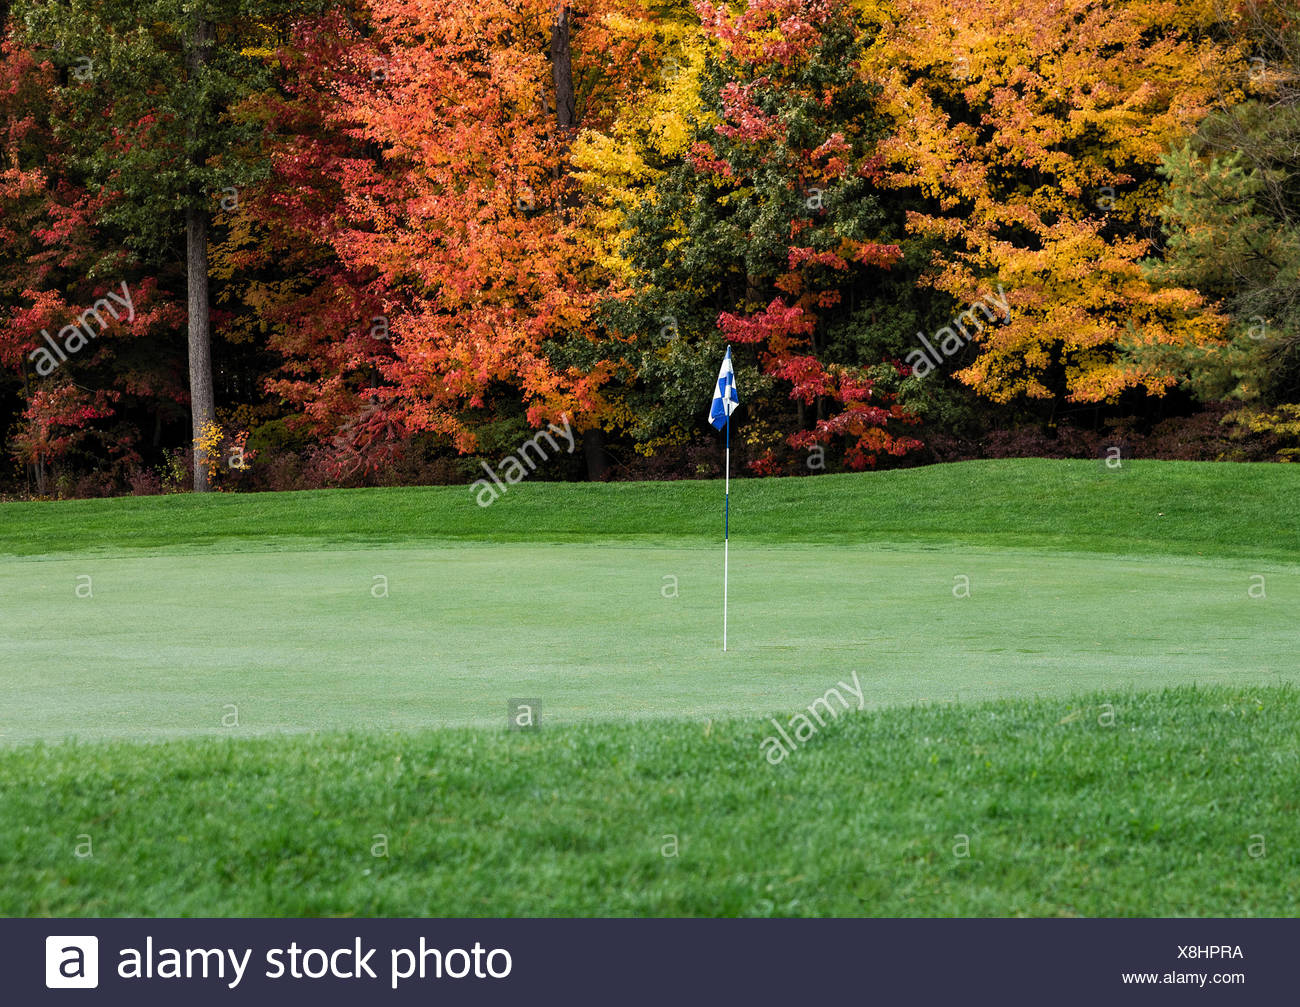 Golf course putting green with autumn foliage. - Stock Image